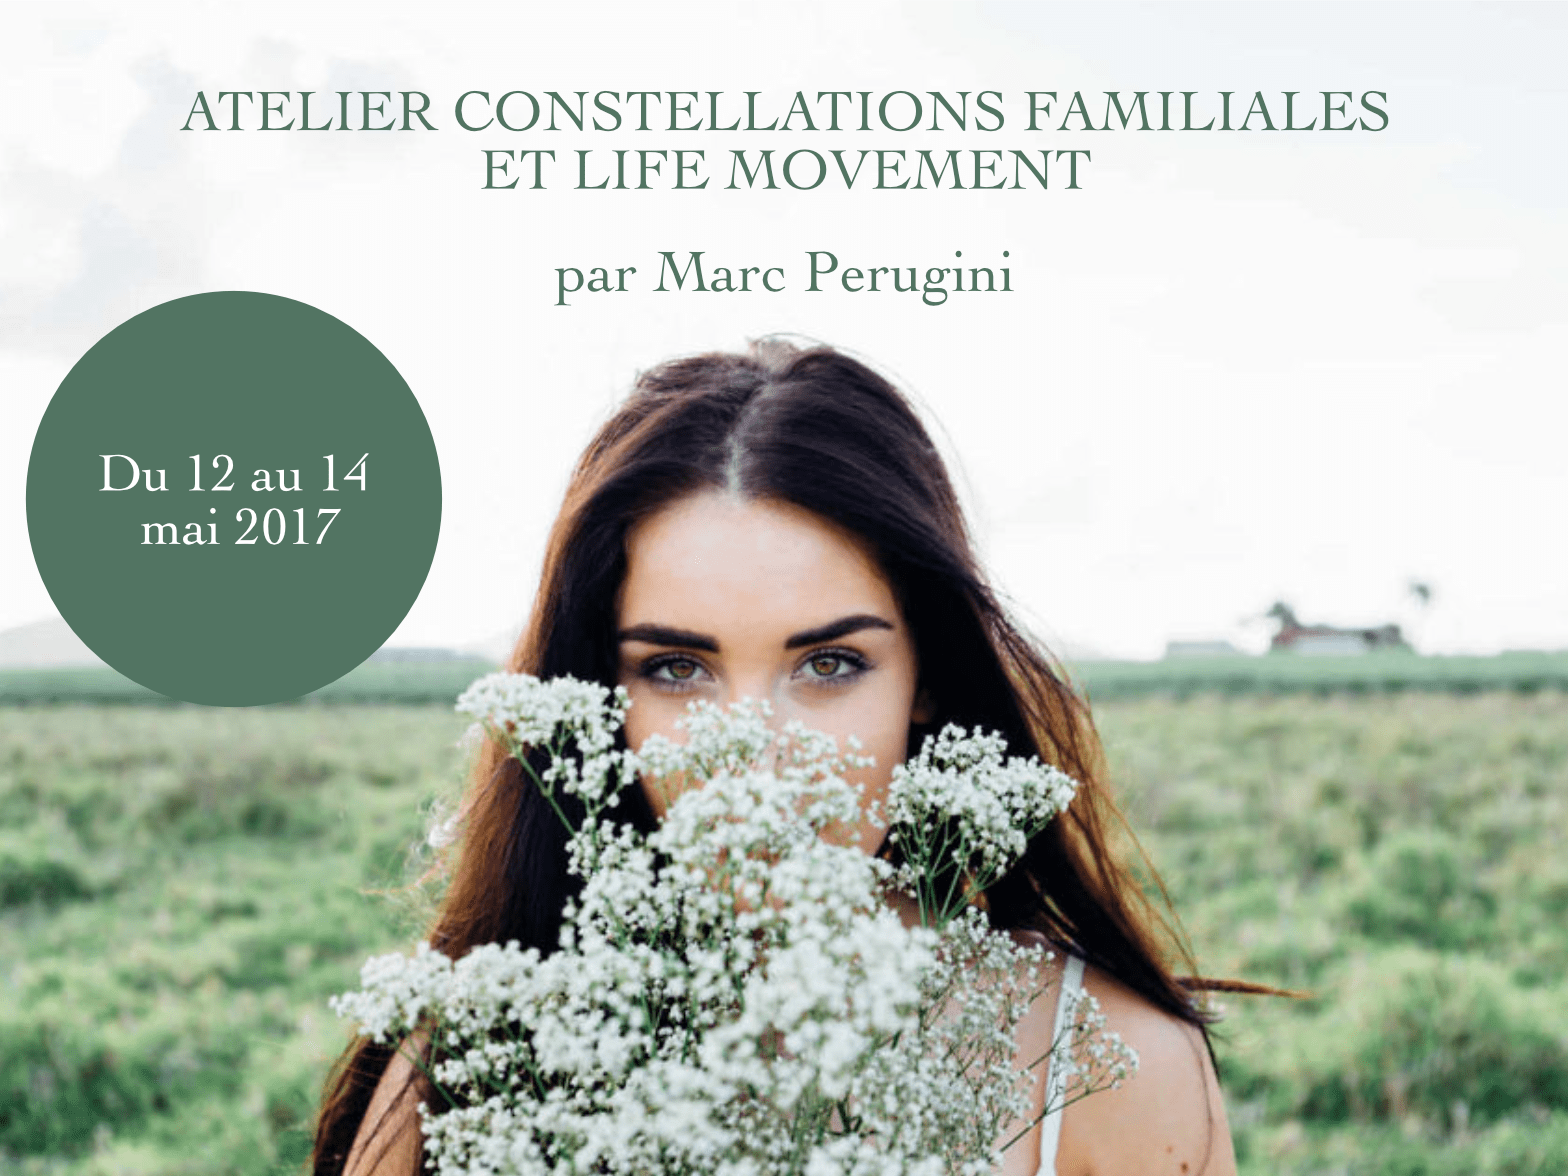 Constellations Familiales et Life Movement en mai 2017 - Être Soi